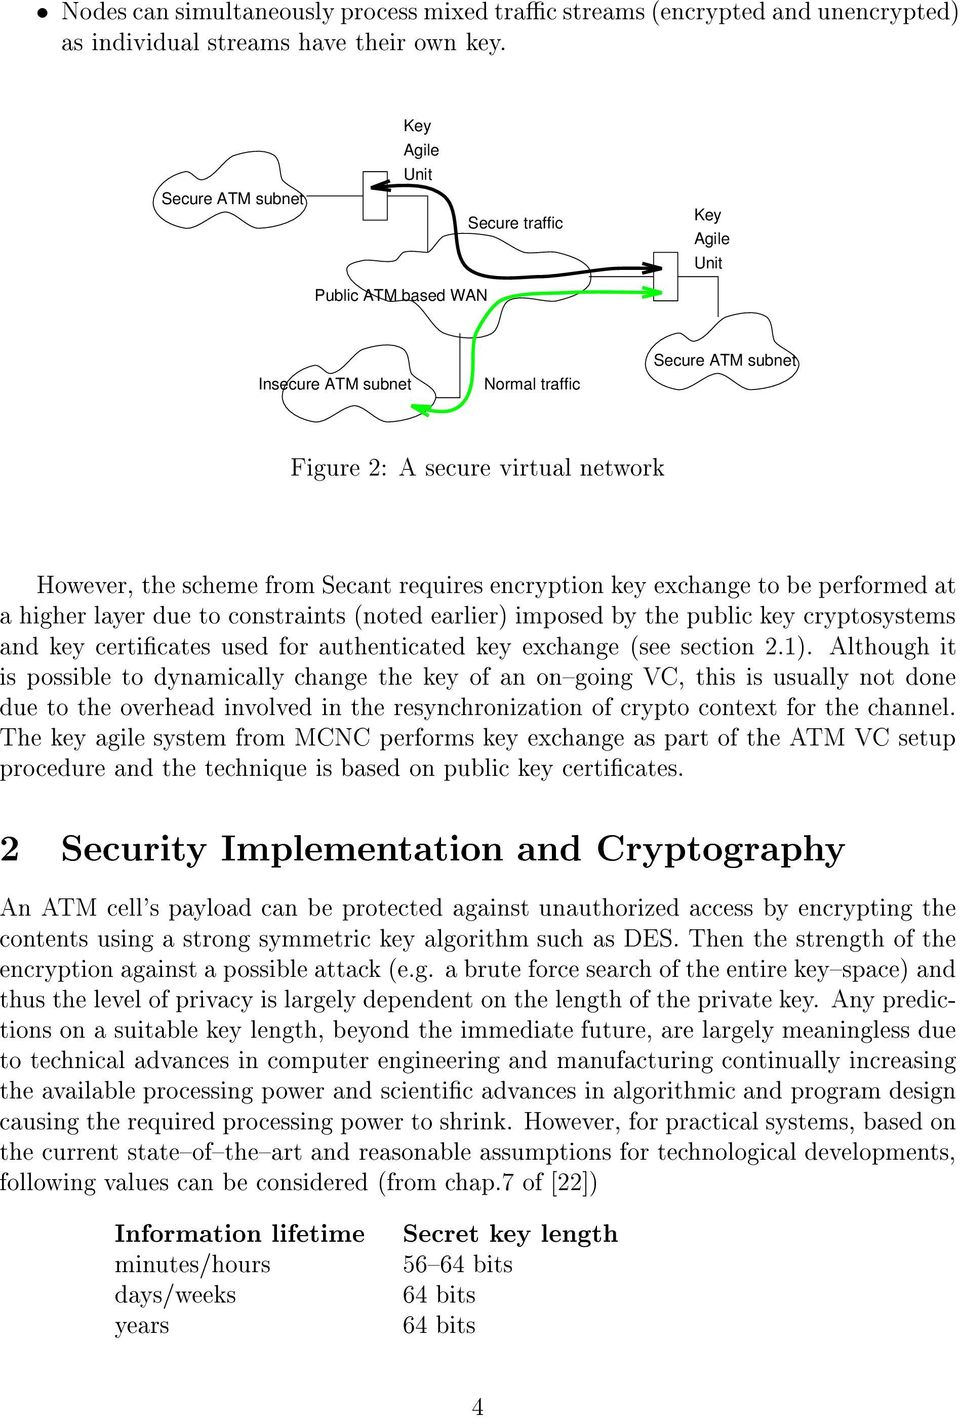 Secant requires encryption key exchange to be performed at a higher layer due to constraints (noted earlier) imposed by the public key cryptosystems and key certicates used for authenticated key